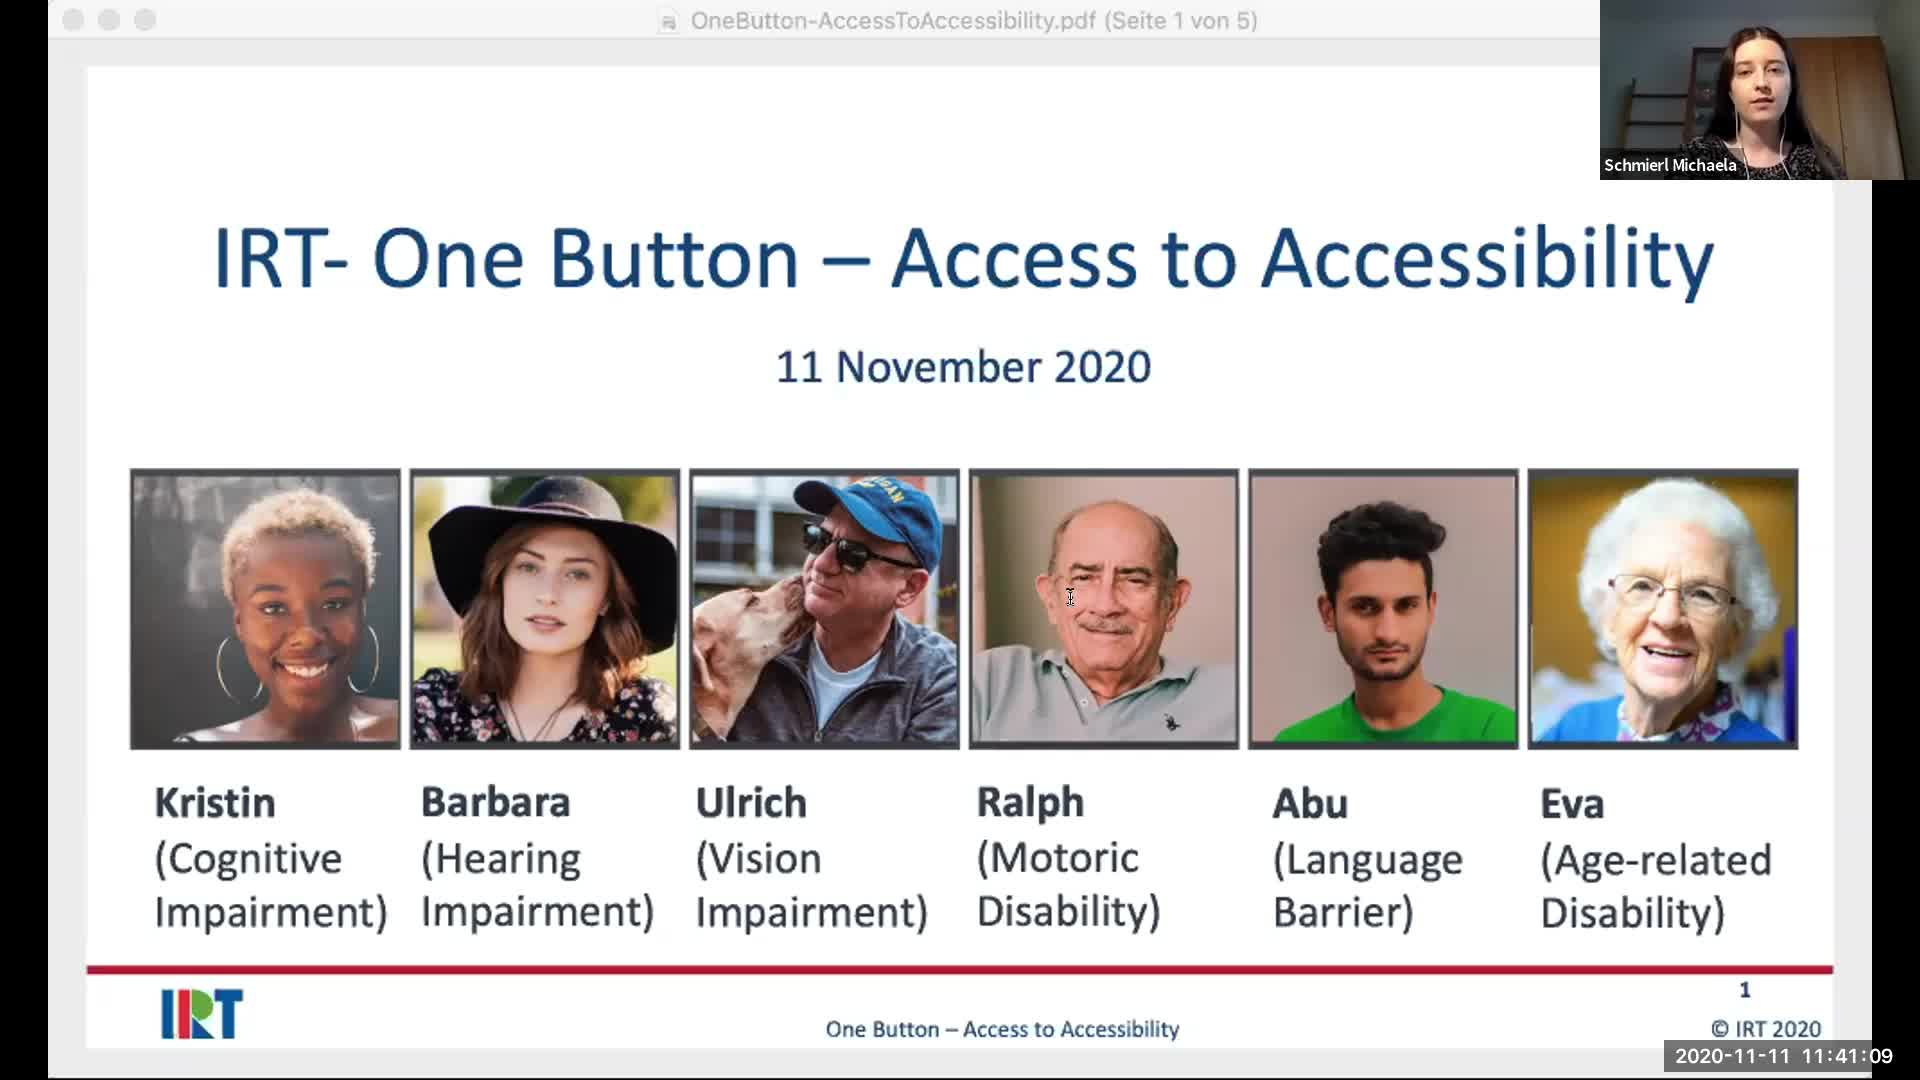 Lightning Talk: One button concept - Access to accessibility